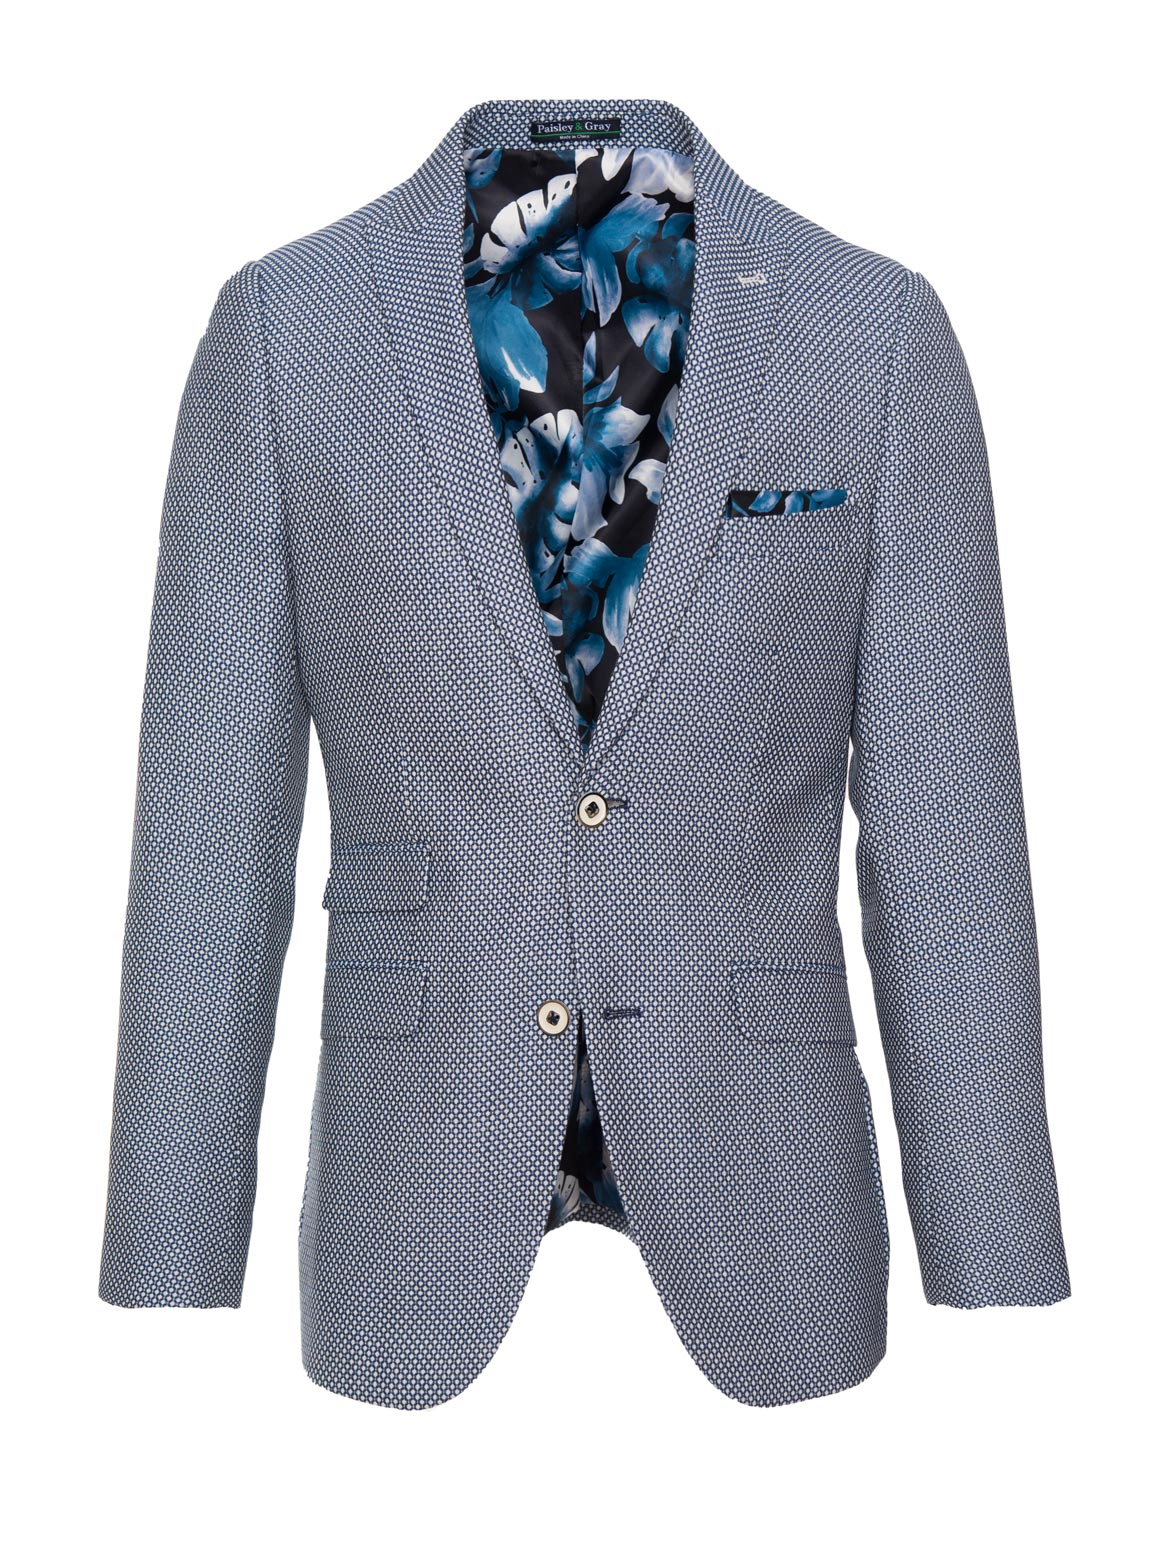 paisley & gray white & blue dot skinny fit peak lapel suit jacket 2141J monochromatic camo-floral lining and pocket square blue buttons flap pockets